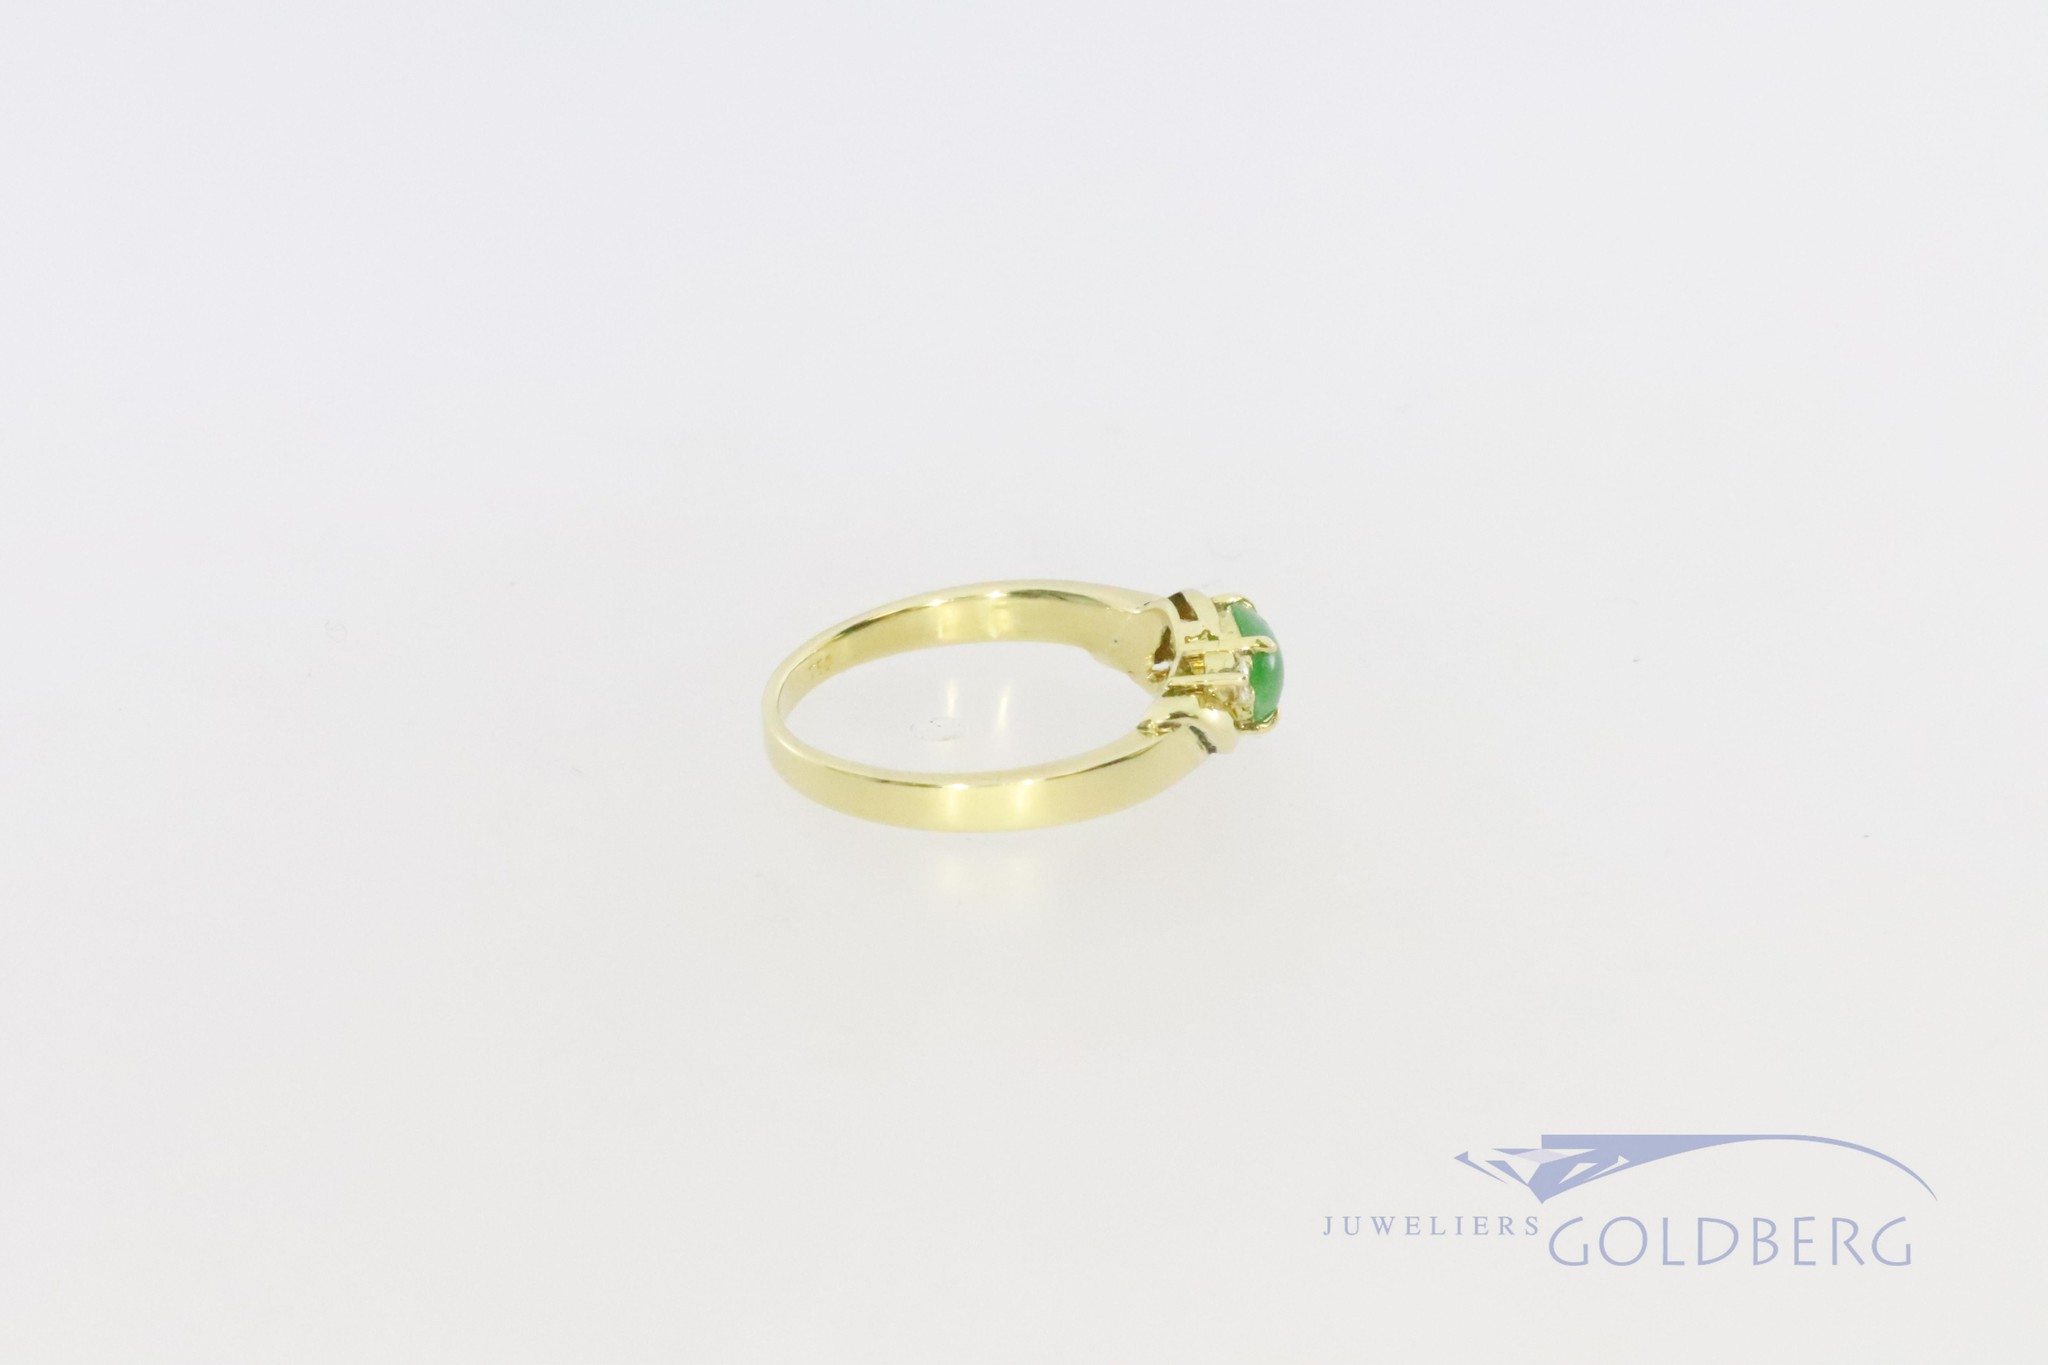 18k ring with chrysoprase and diamond